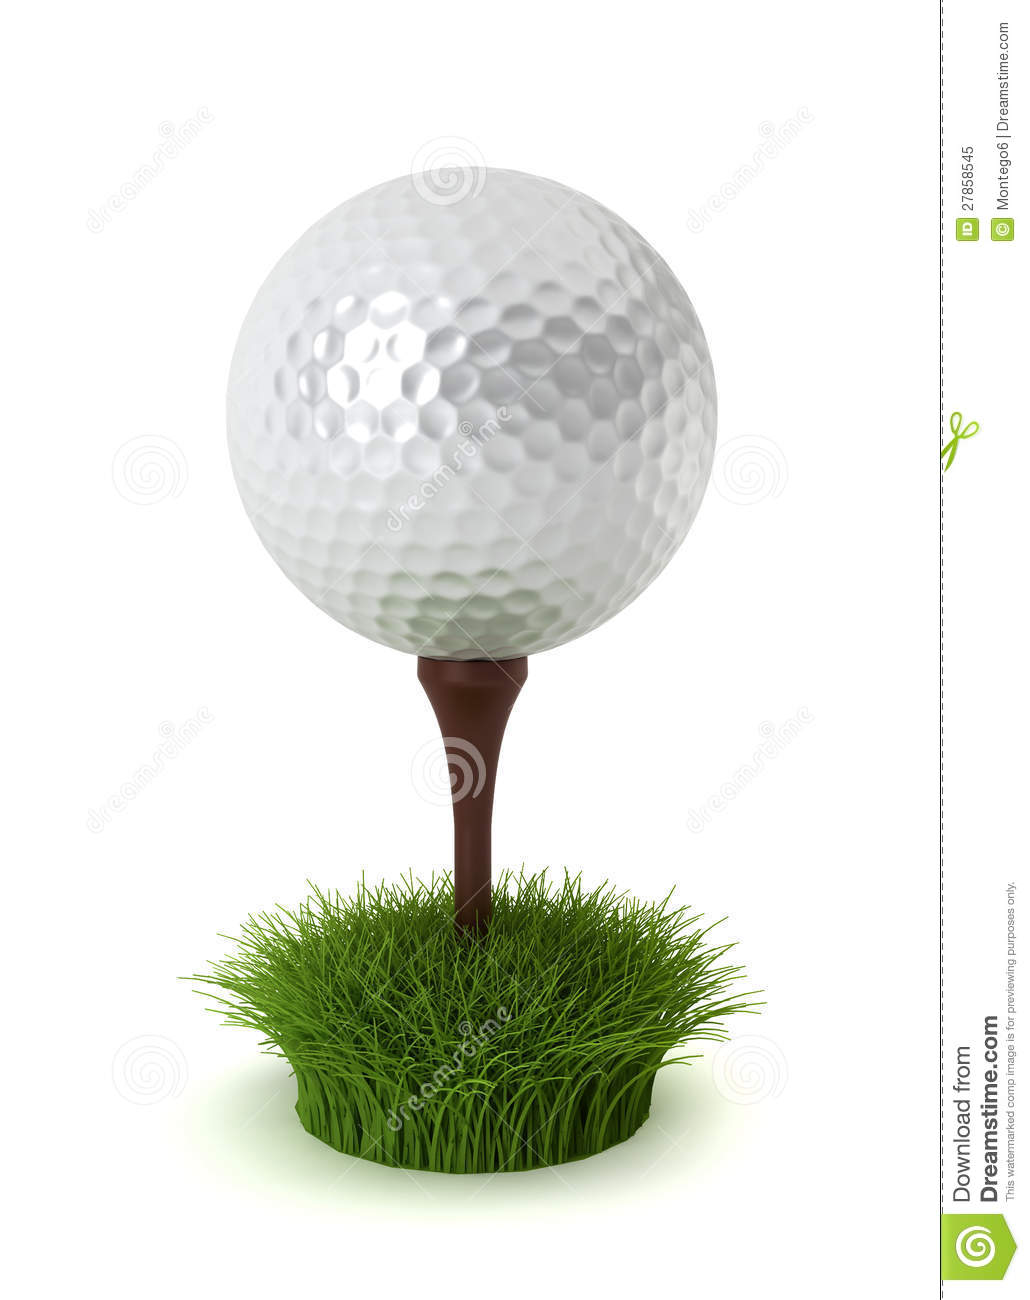 Golf Ball On Grass Royalty Free Stock Photo - Image: 27858545